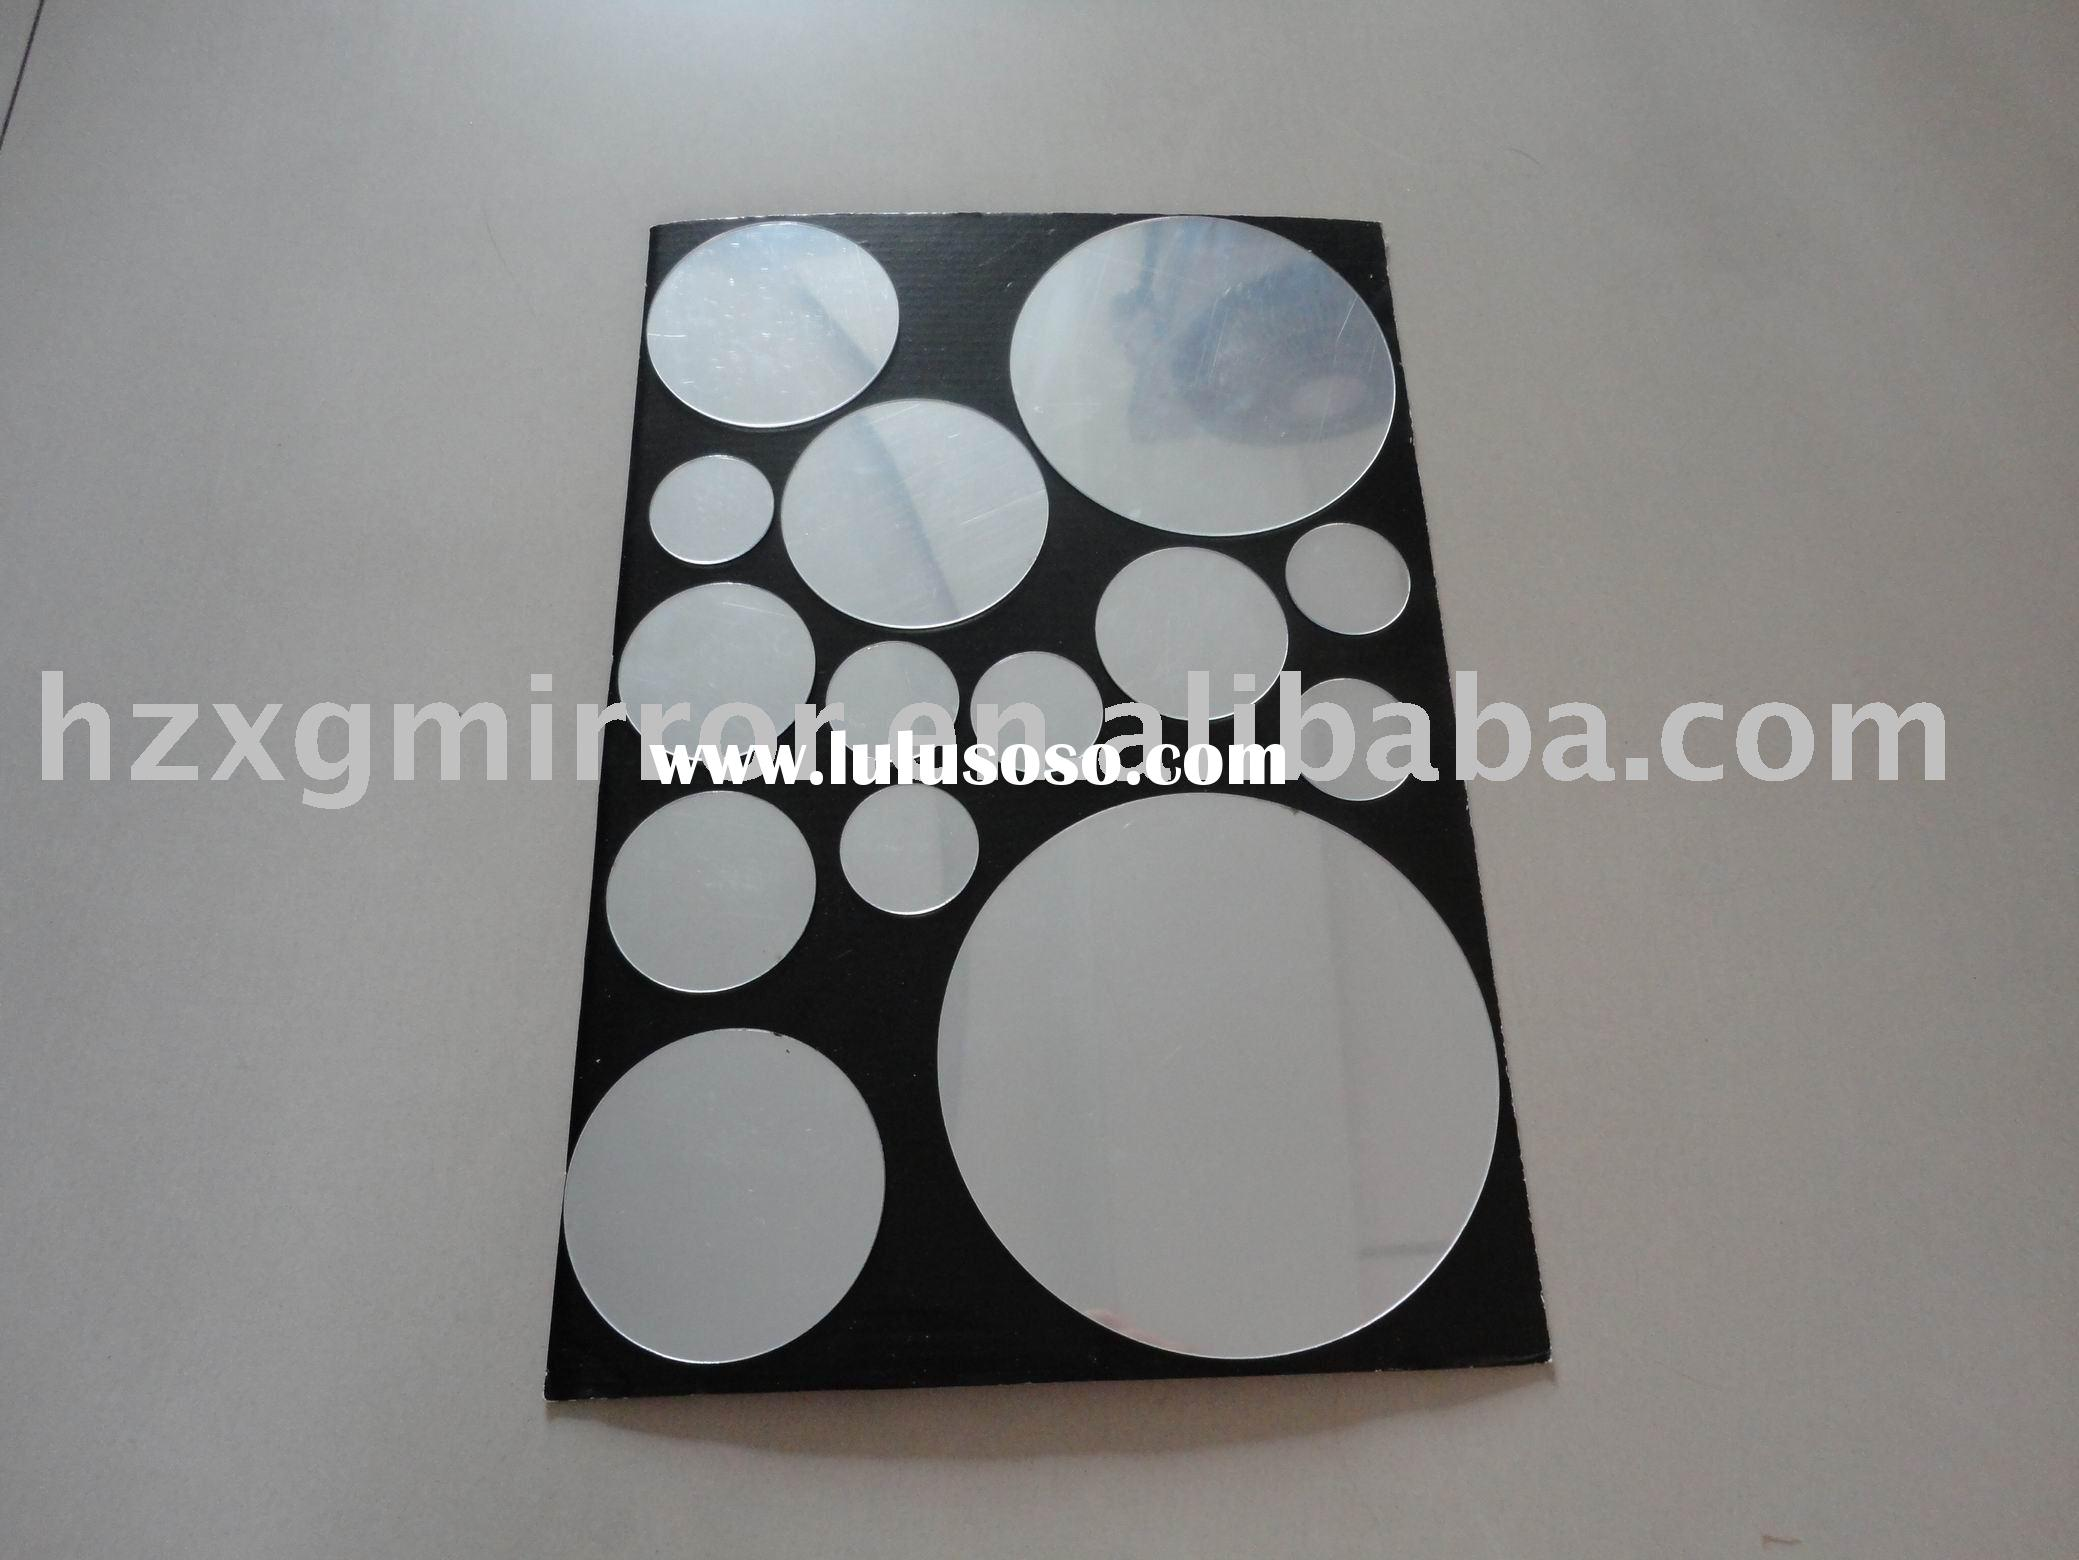 Circle peel and stick mirror